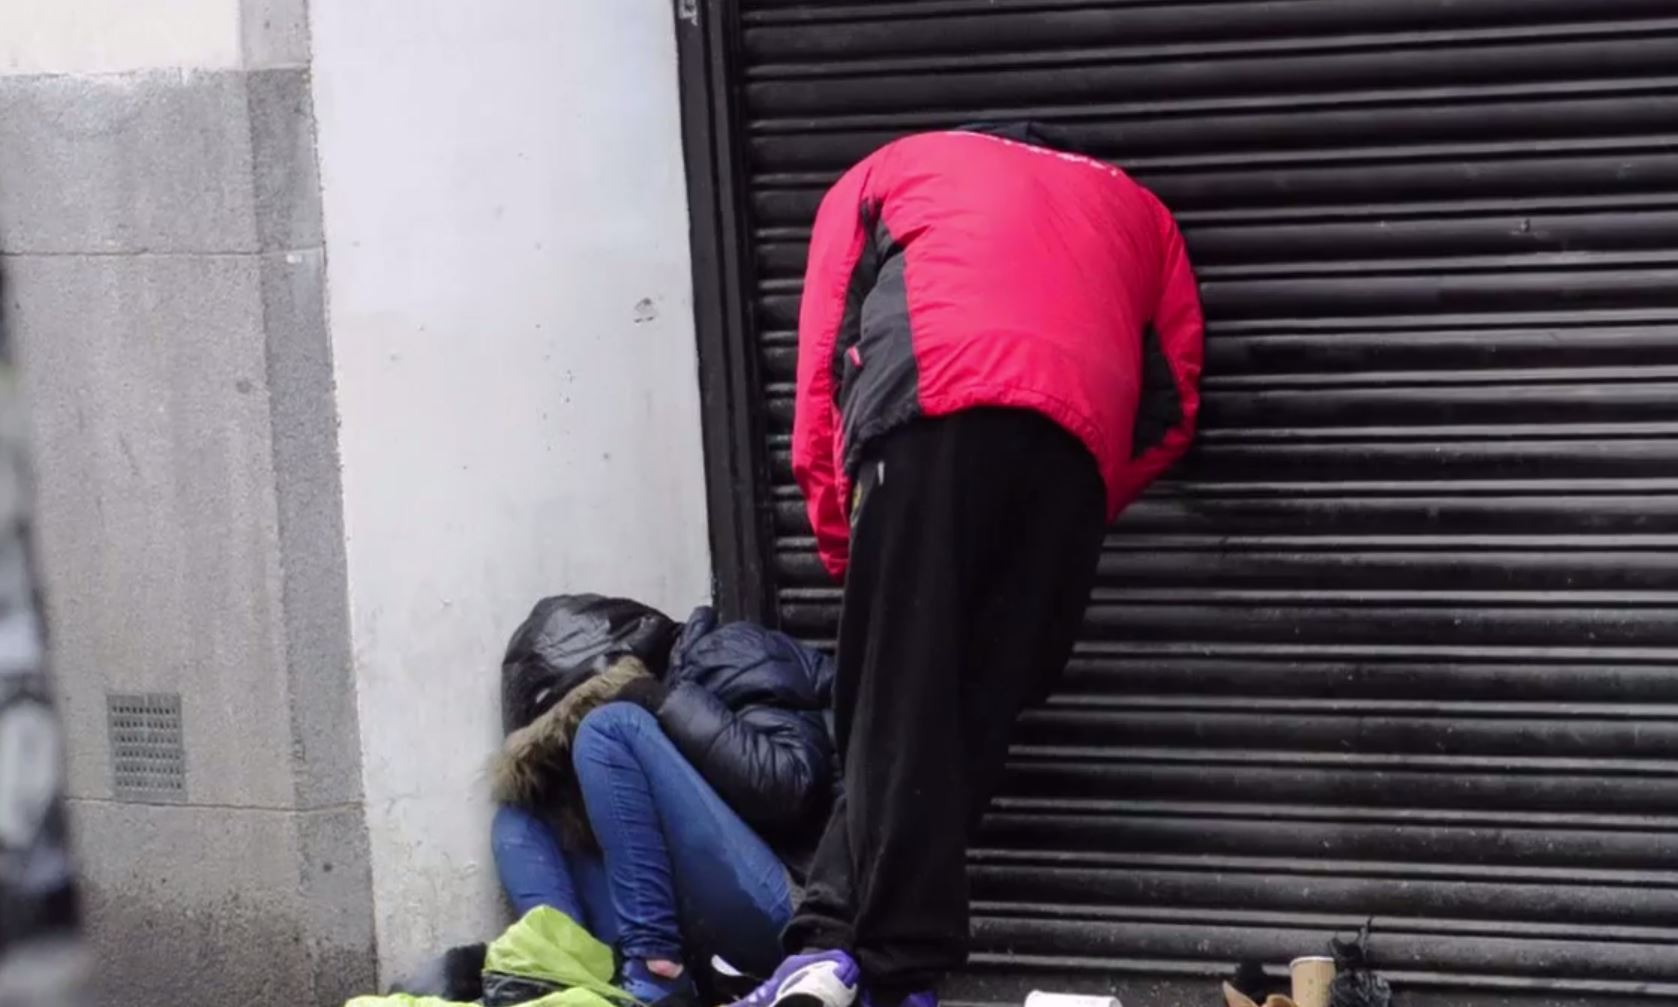 Homeless people appear to be like statues after taking Spice